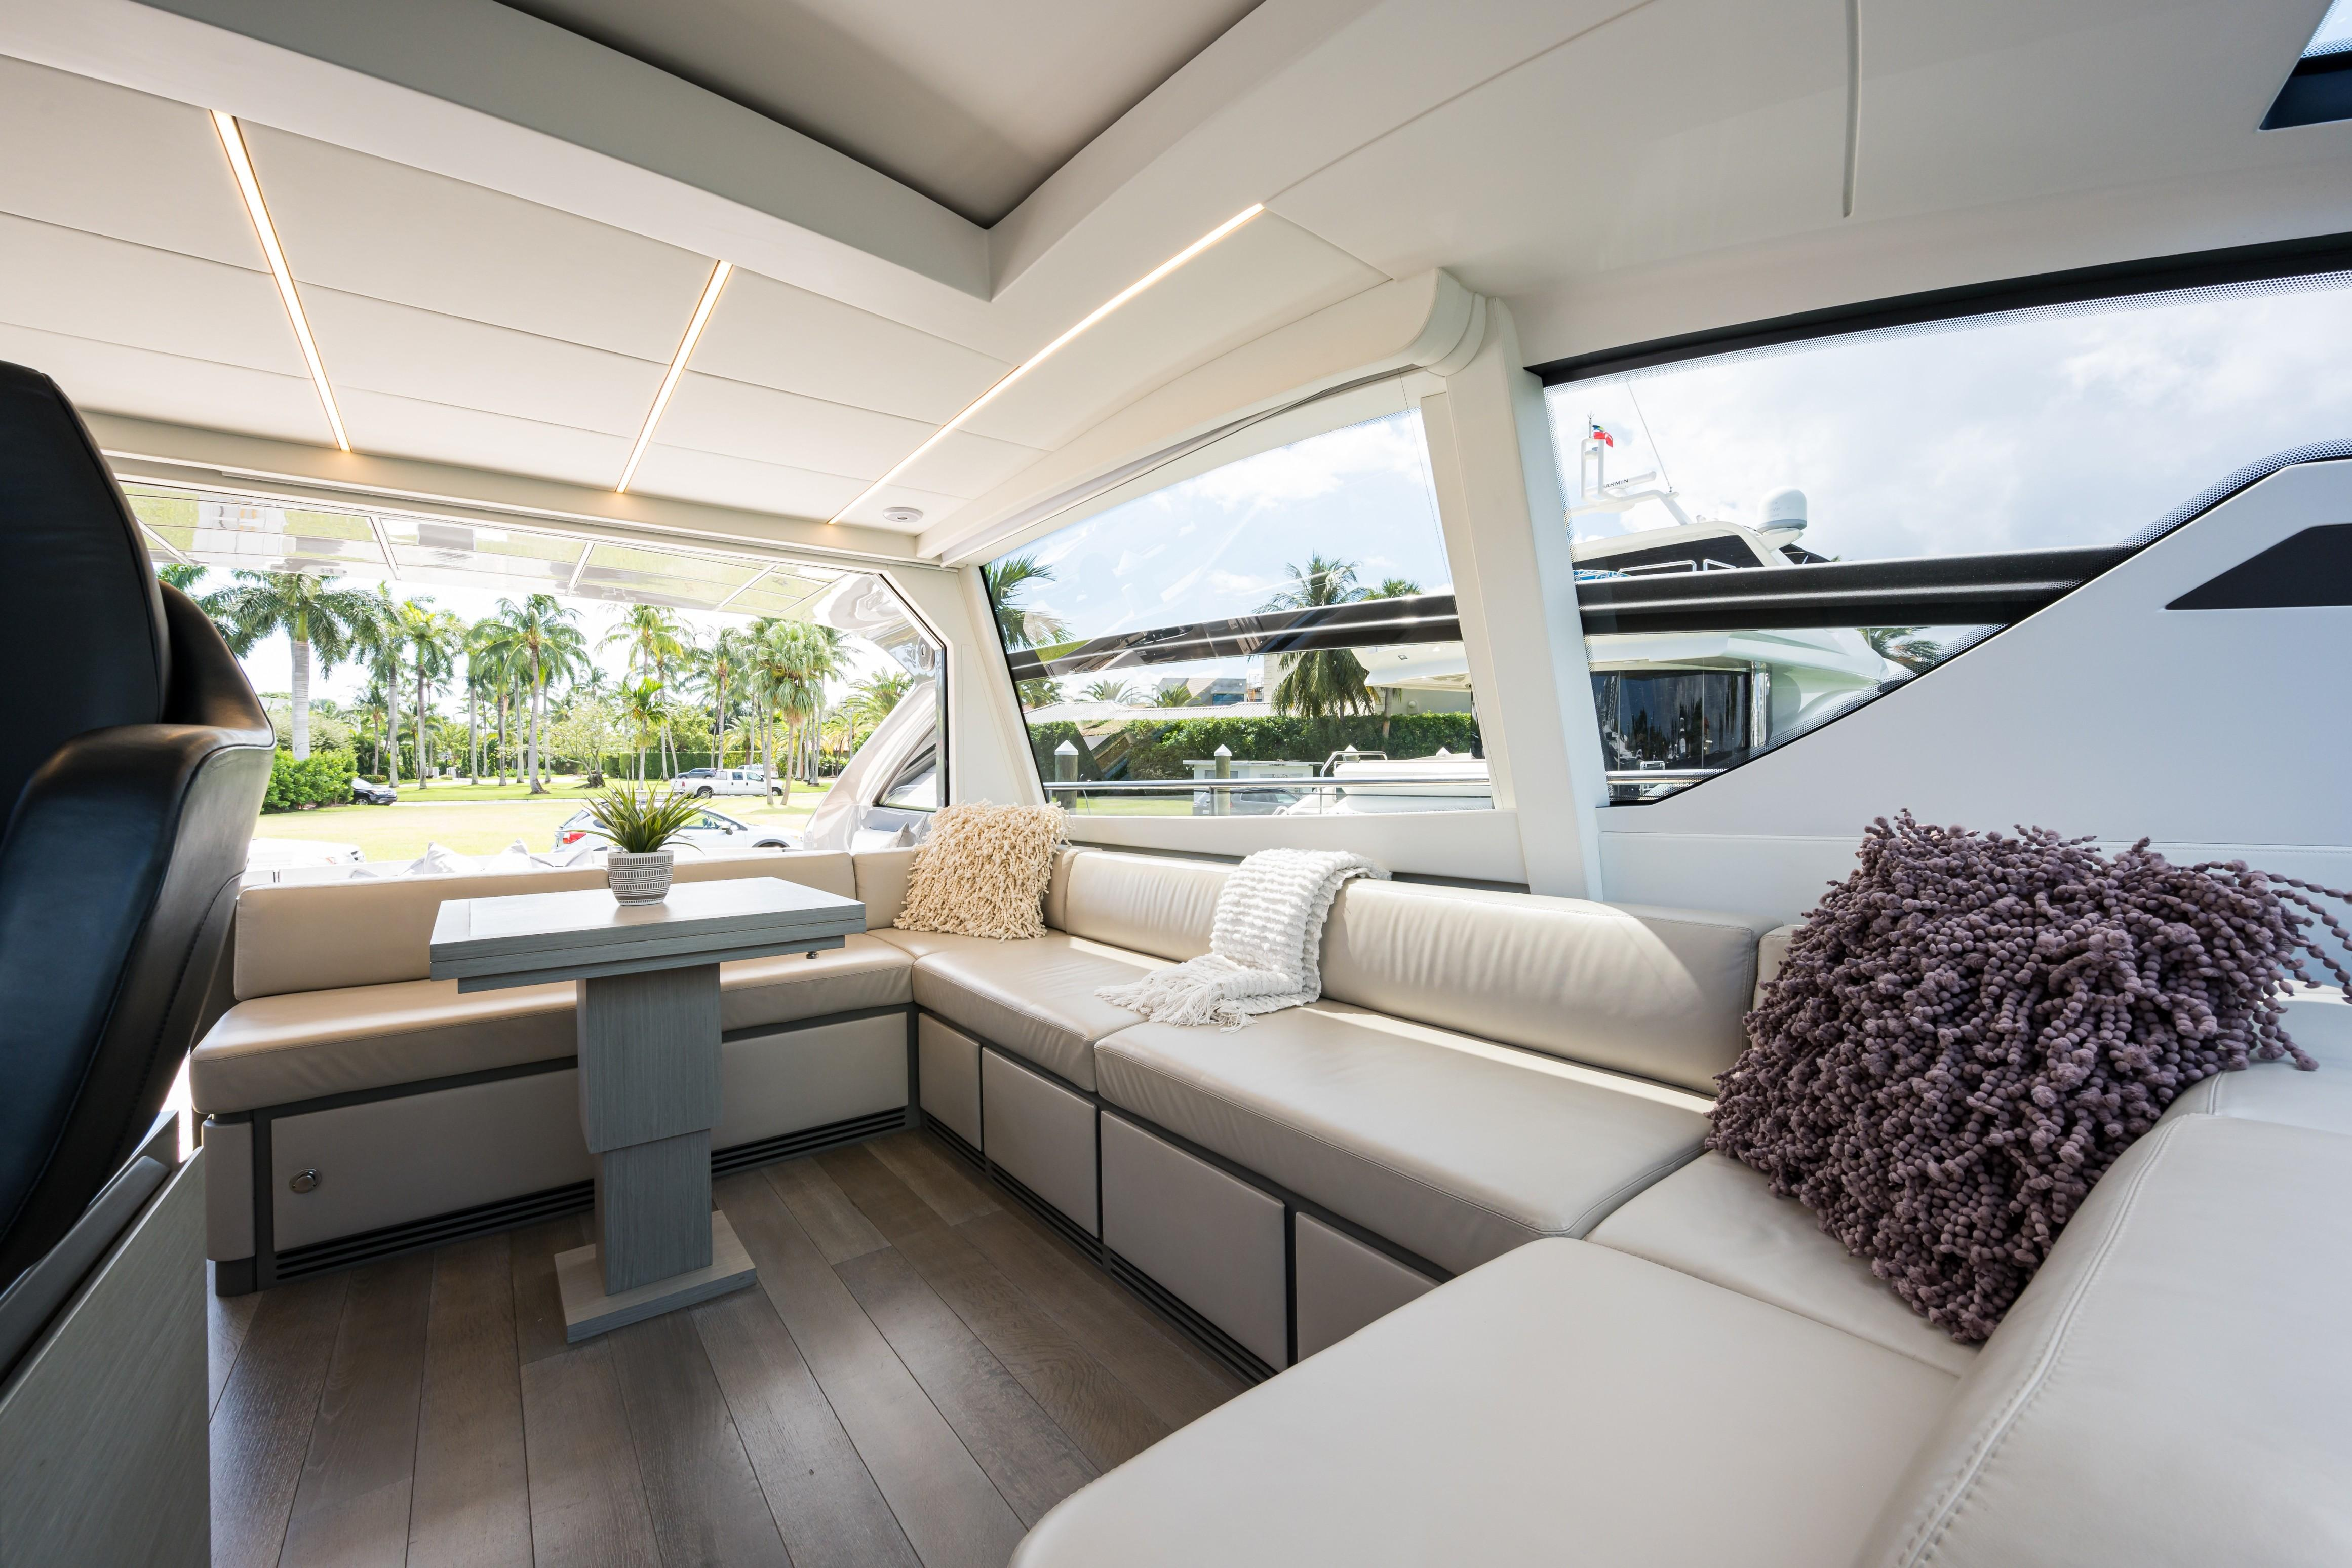 2016 Pershing 62 - Salon